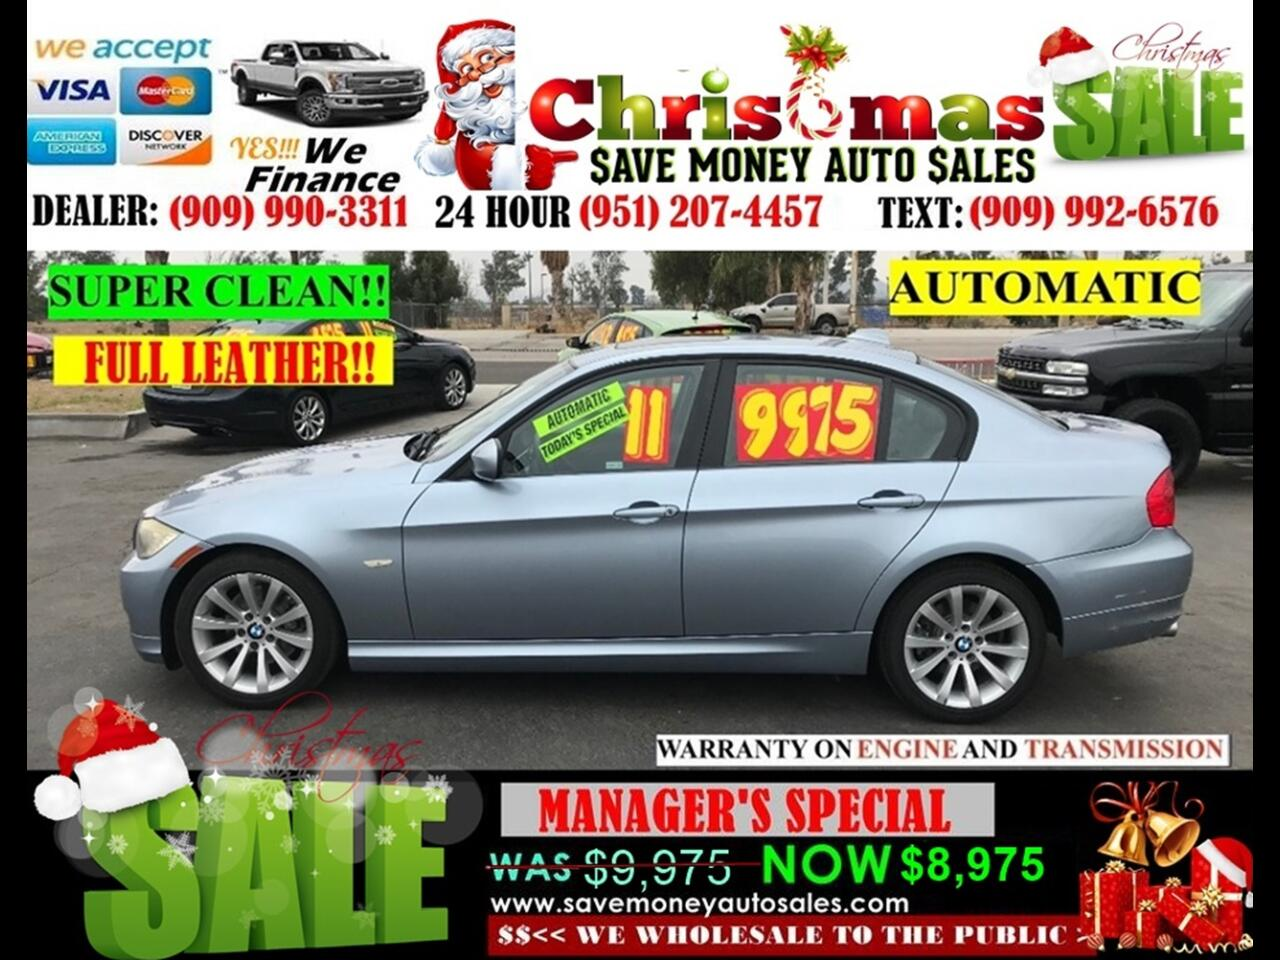 2011 BMW 3-Series 328I >6 CYLDS > FULL LEATHER > VERY CLEAN